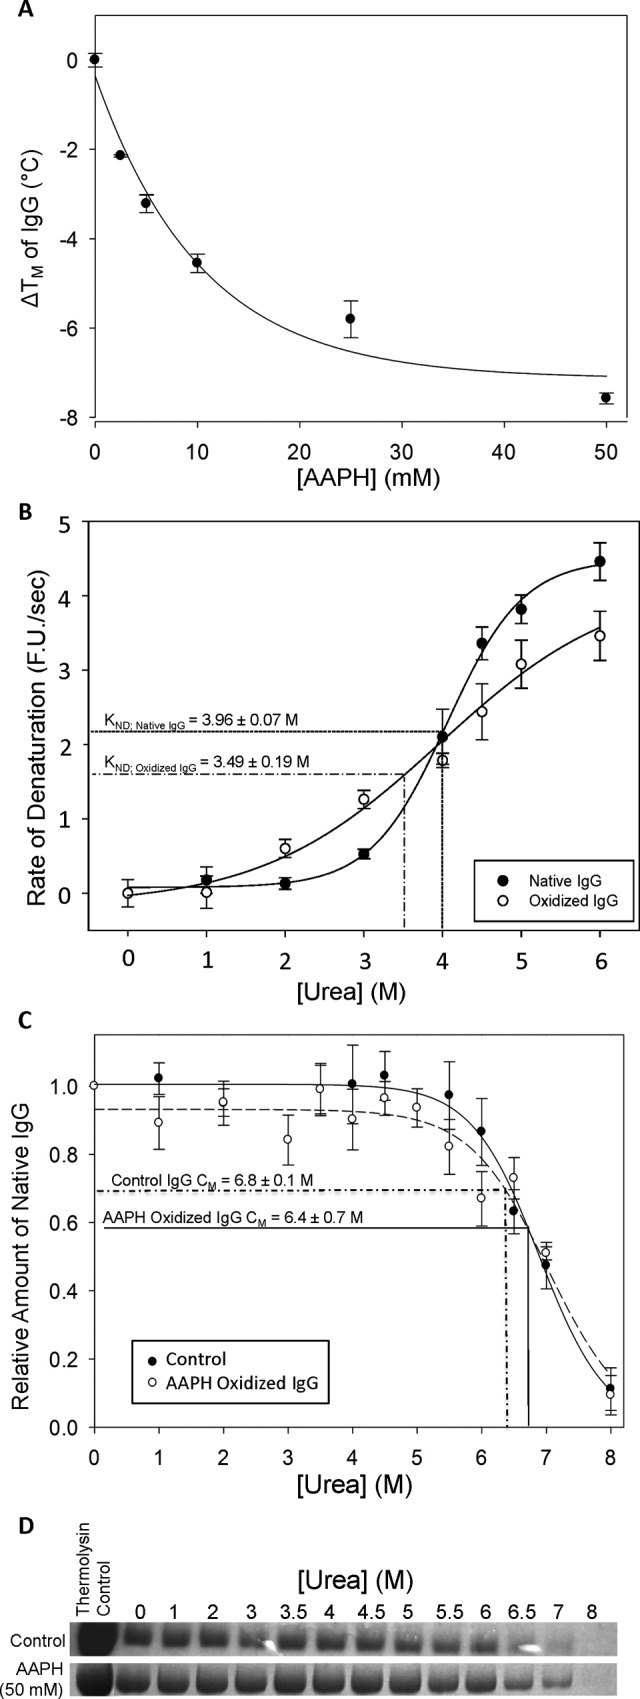 The influence of oxidation by 2,2-Azobis[2-amidinopropane]dihydrochloride (AAPH)-generated free radicals on immunoglobulin G (IgG) stability was investigated using differential scanning fluorimetry (DSF), real-time isothermal differential scanning fluorimetry (RT-iDSF), and pulse proteolysis. A, Thermal shift changes (ie, change in T m ) determined by DSF for human IgG (1 mg/mL) incubated with {0, 2.5, 5, 10, 25, or 50} mM AAPH for 1 hour at 4°C. B, The effect of oxidation on the velocity of denaturation of IgG by urea as determined by RT-iDSF. Immunoglobulin G samples were incubated with or without 50 mM AAPH for 2 hours at 4°C immediately prior to assaying. An asterisk (*) indicates significantly different from the control value ( P